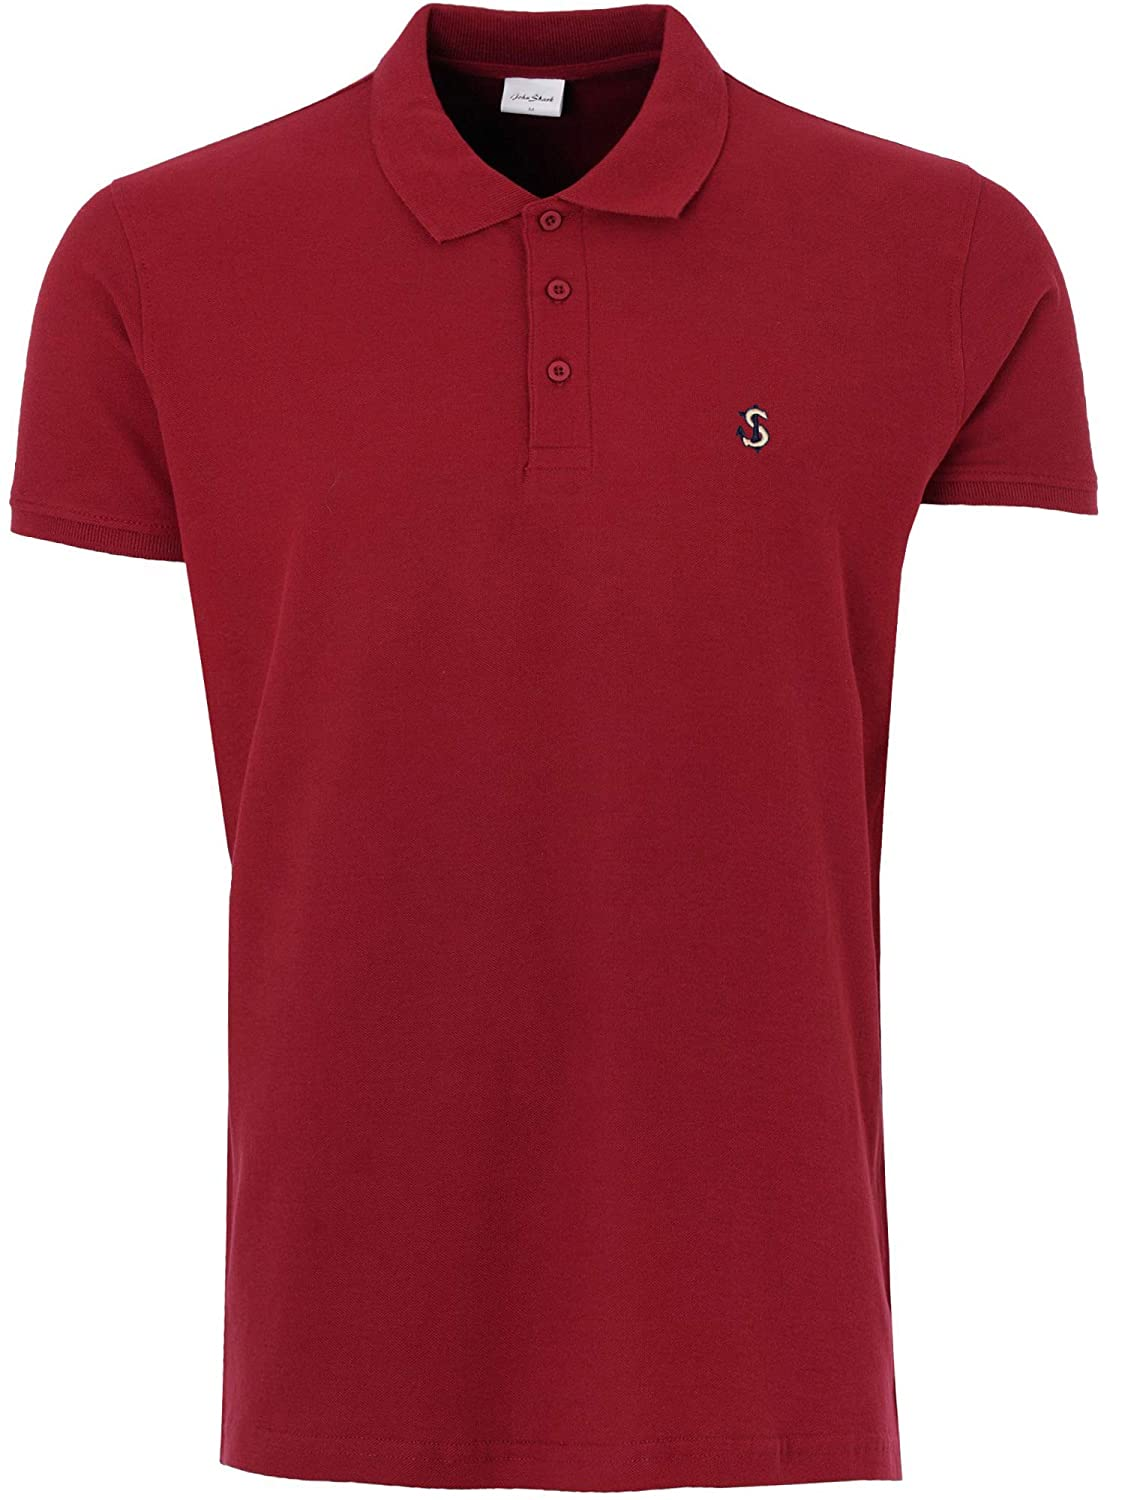 John Shark - Polo - para Hombre Rojo Garnet Burgundy Large: Amazon ...